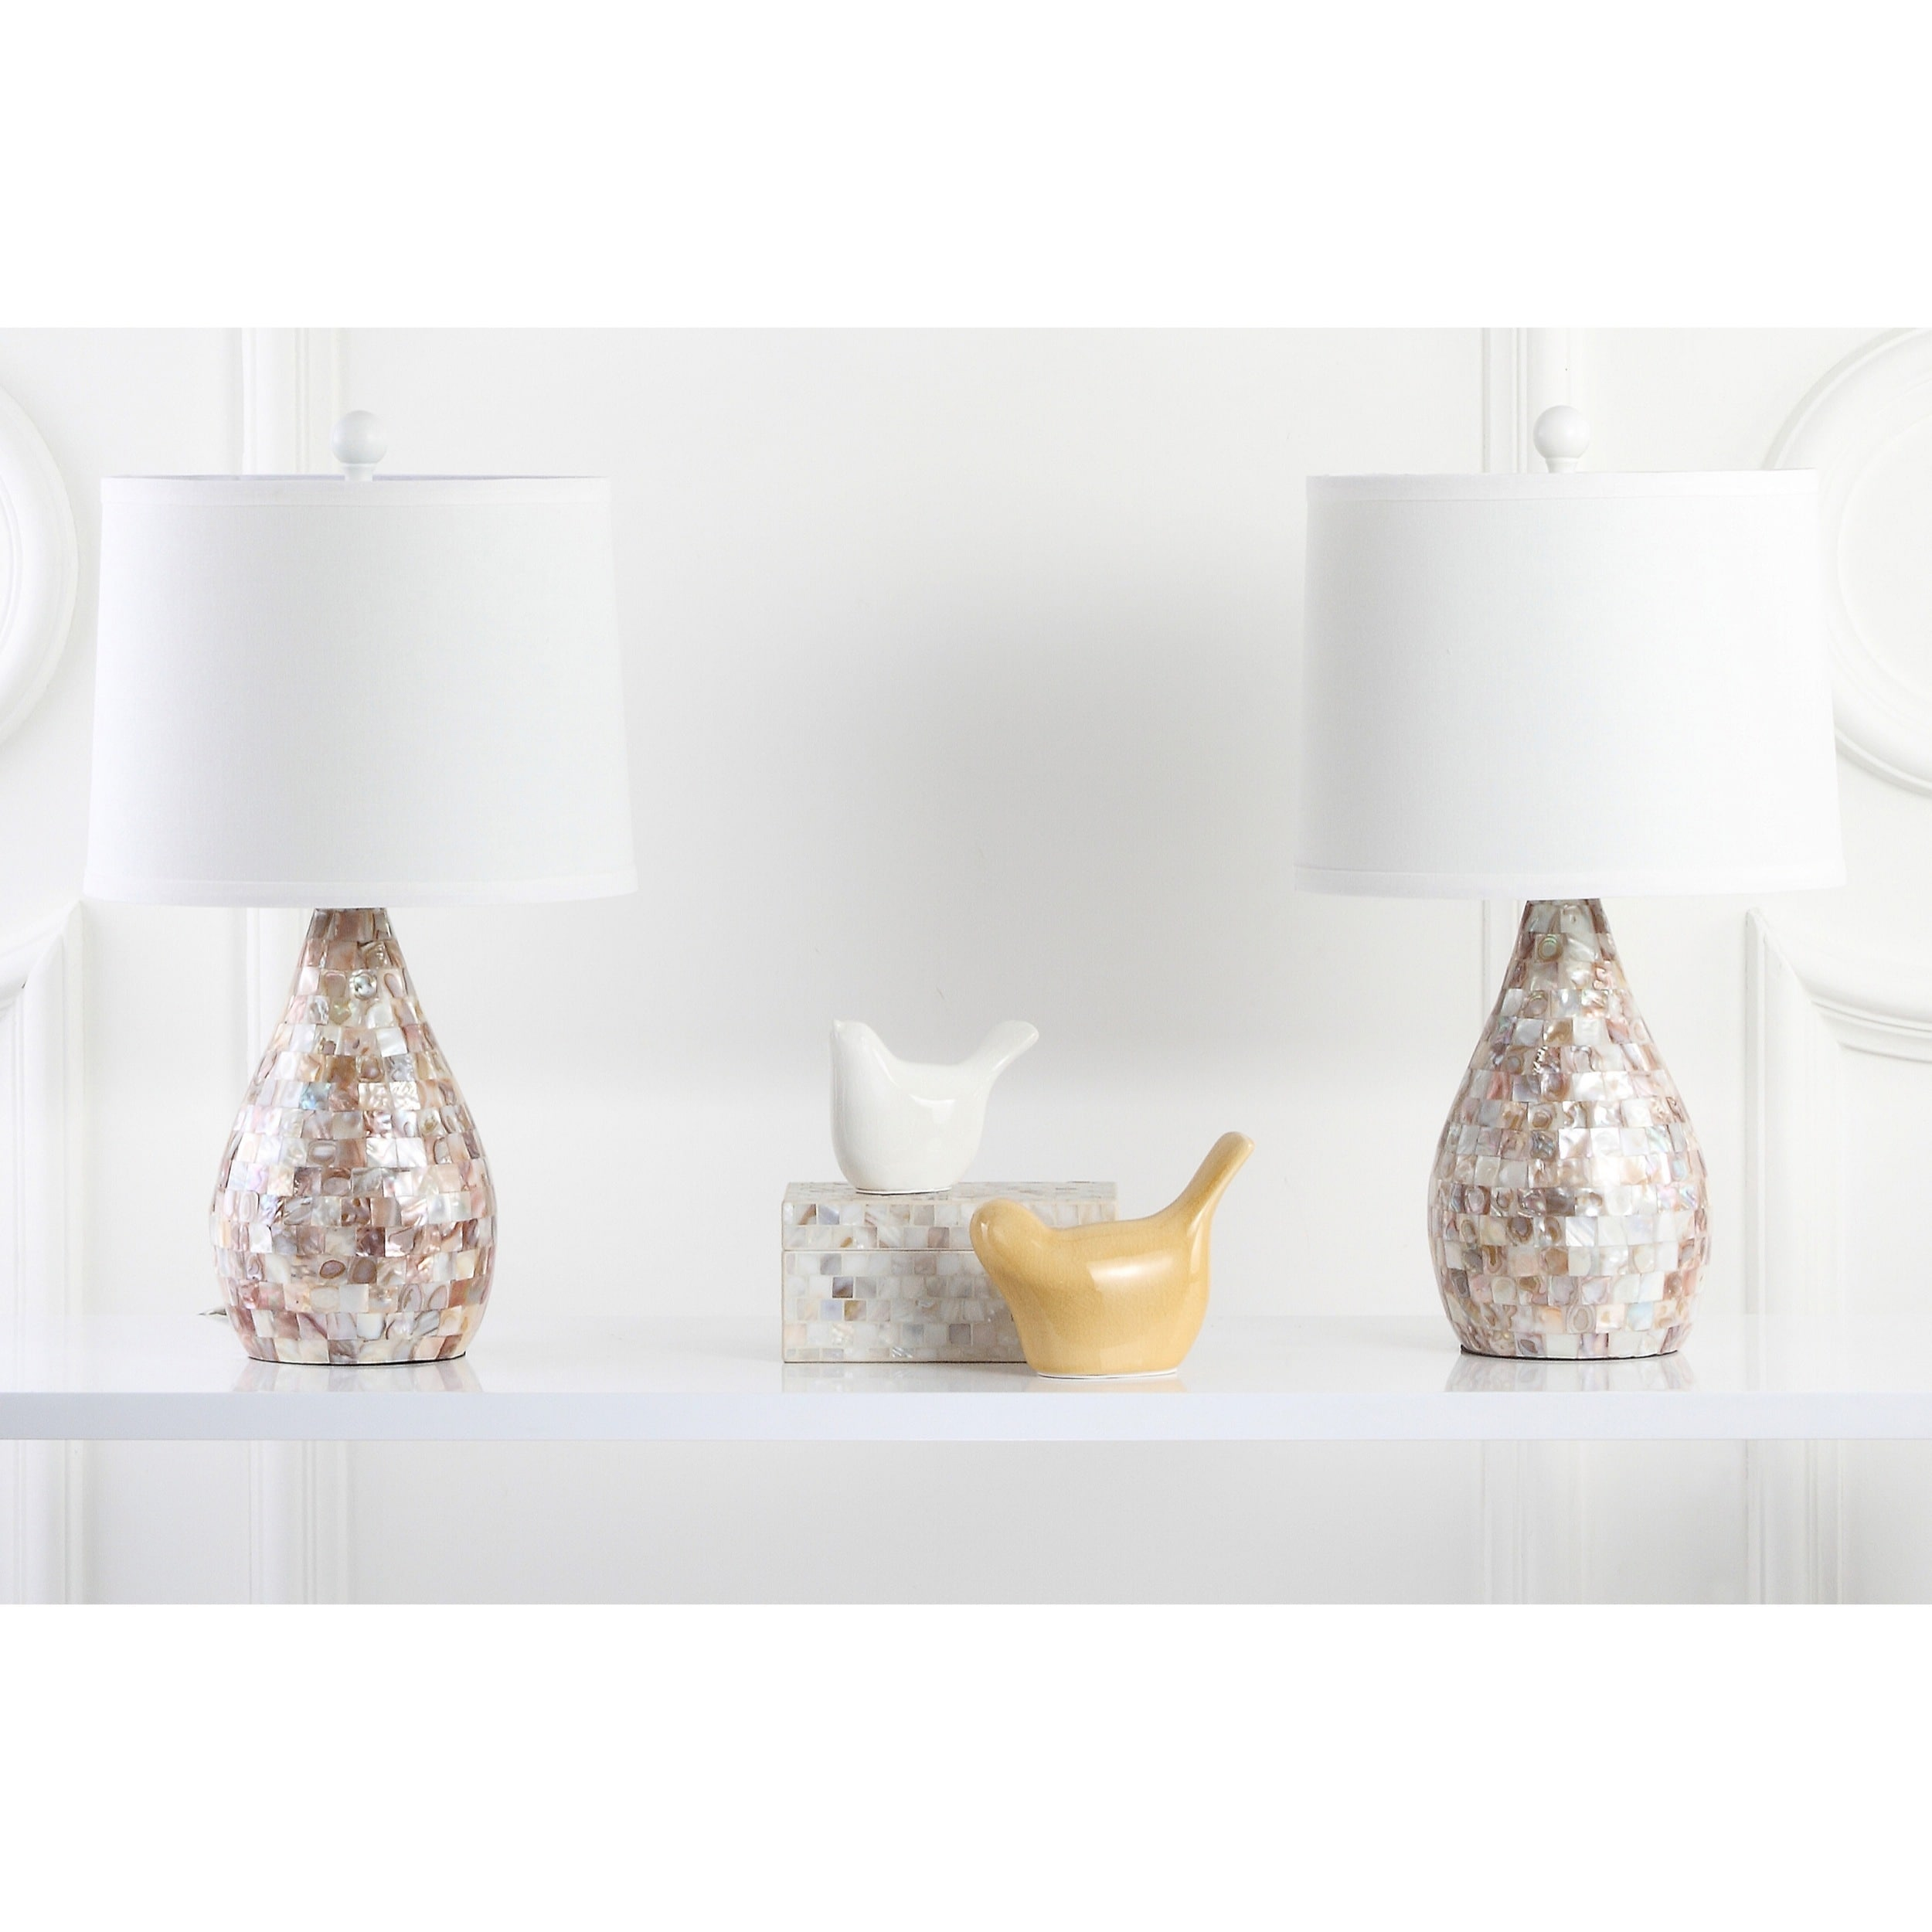 Safavieh lighting 205 inch mother of pearl table lamp set of 2 safavieh lighting 205 inch mother of pearl table lamp set of 2 free shipping today overstock 13792218 reviewsmspy